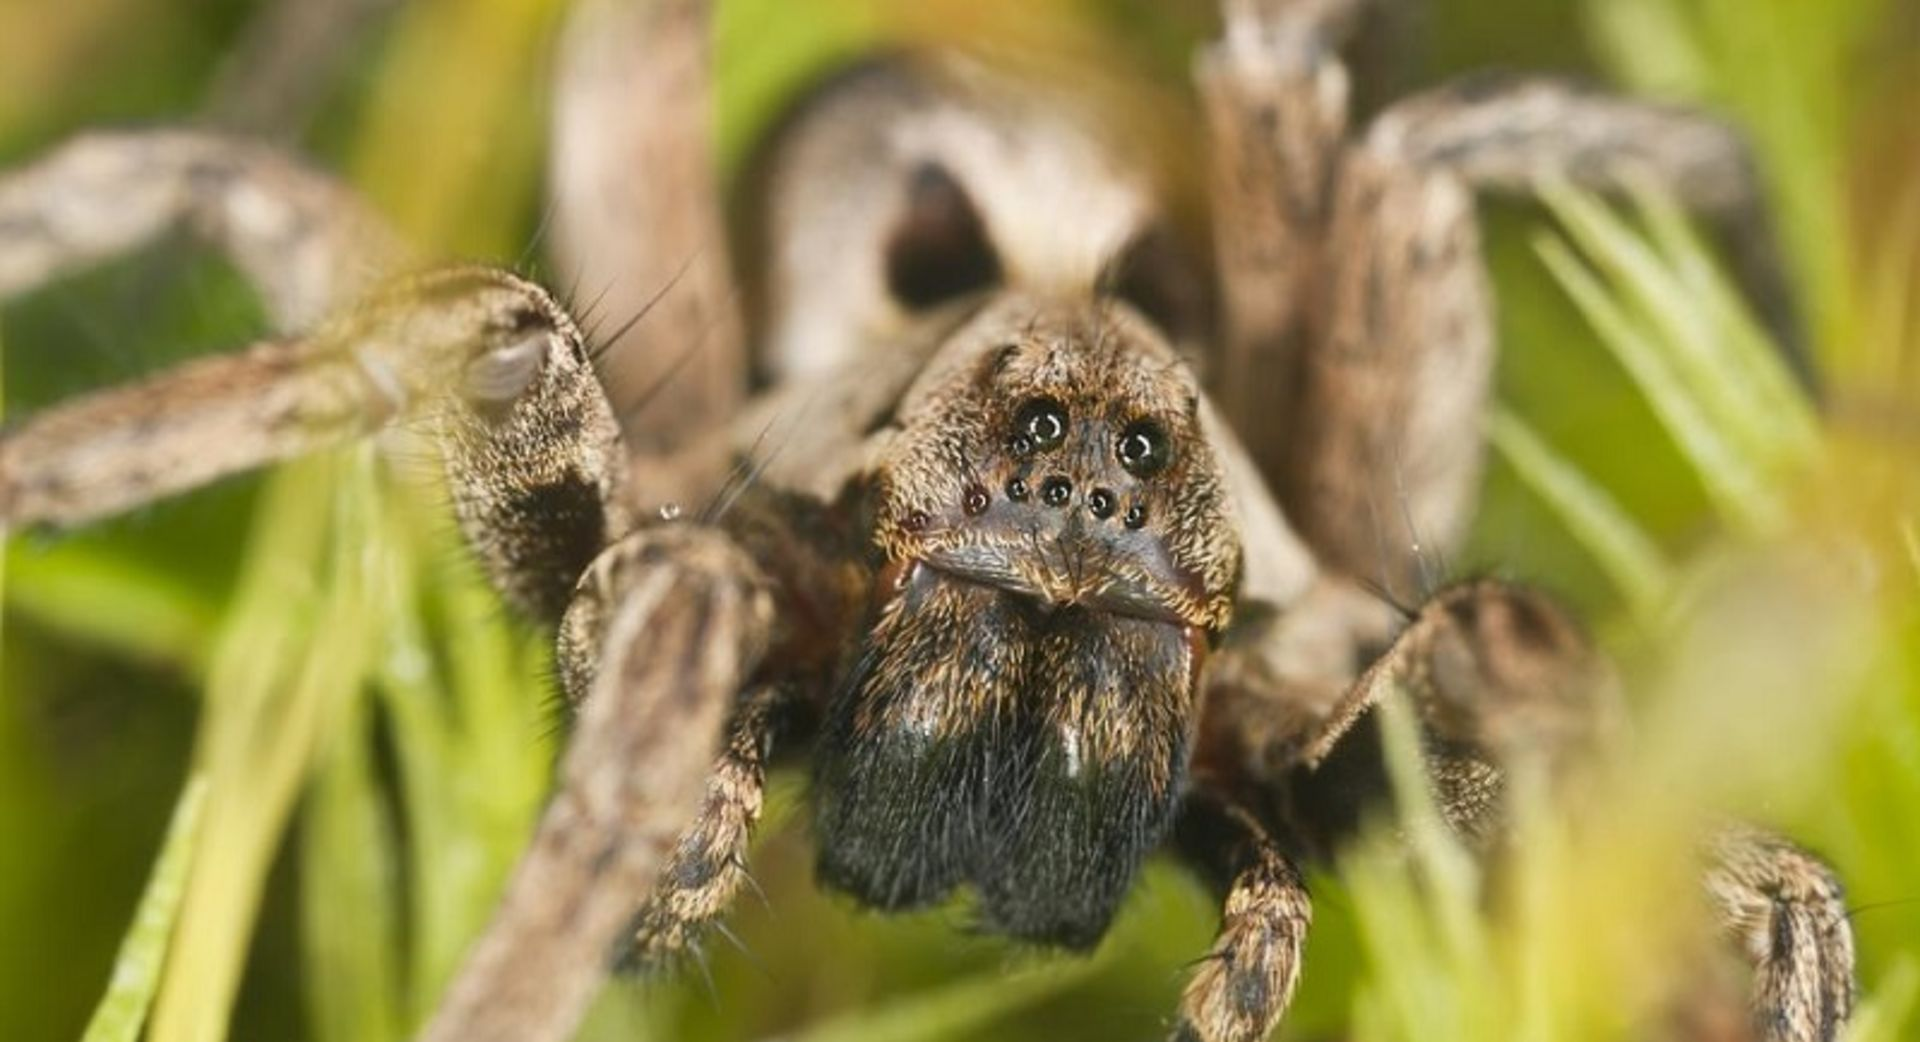 Controlling big honkin' spiders and other pests is imperative for Charlotte area home sellers and homeowners alike!